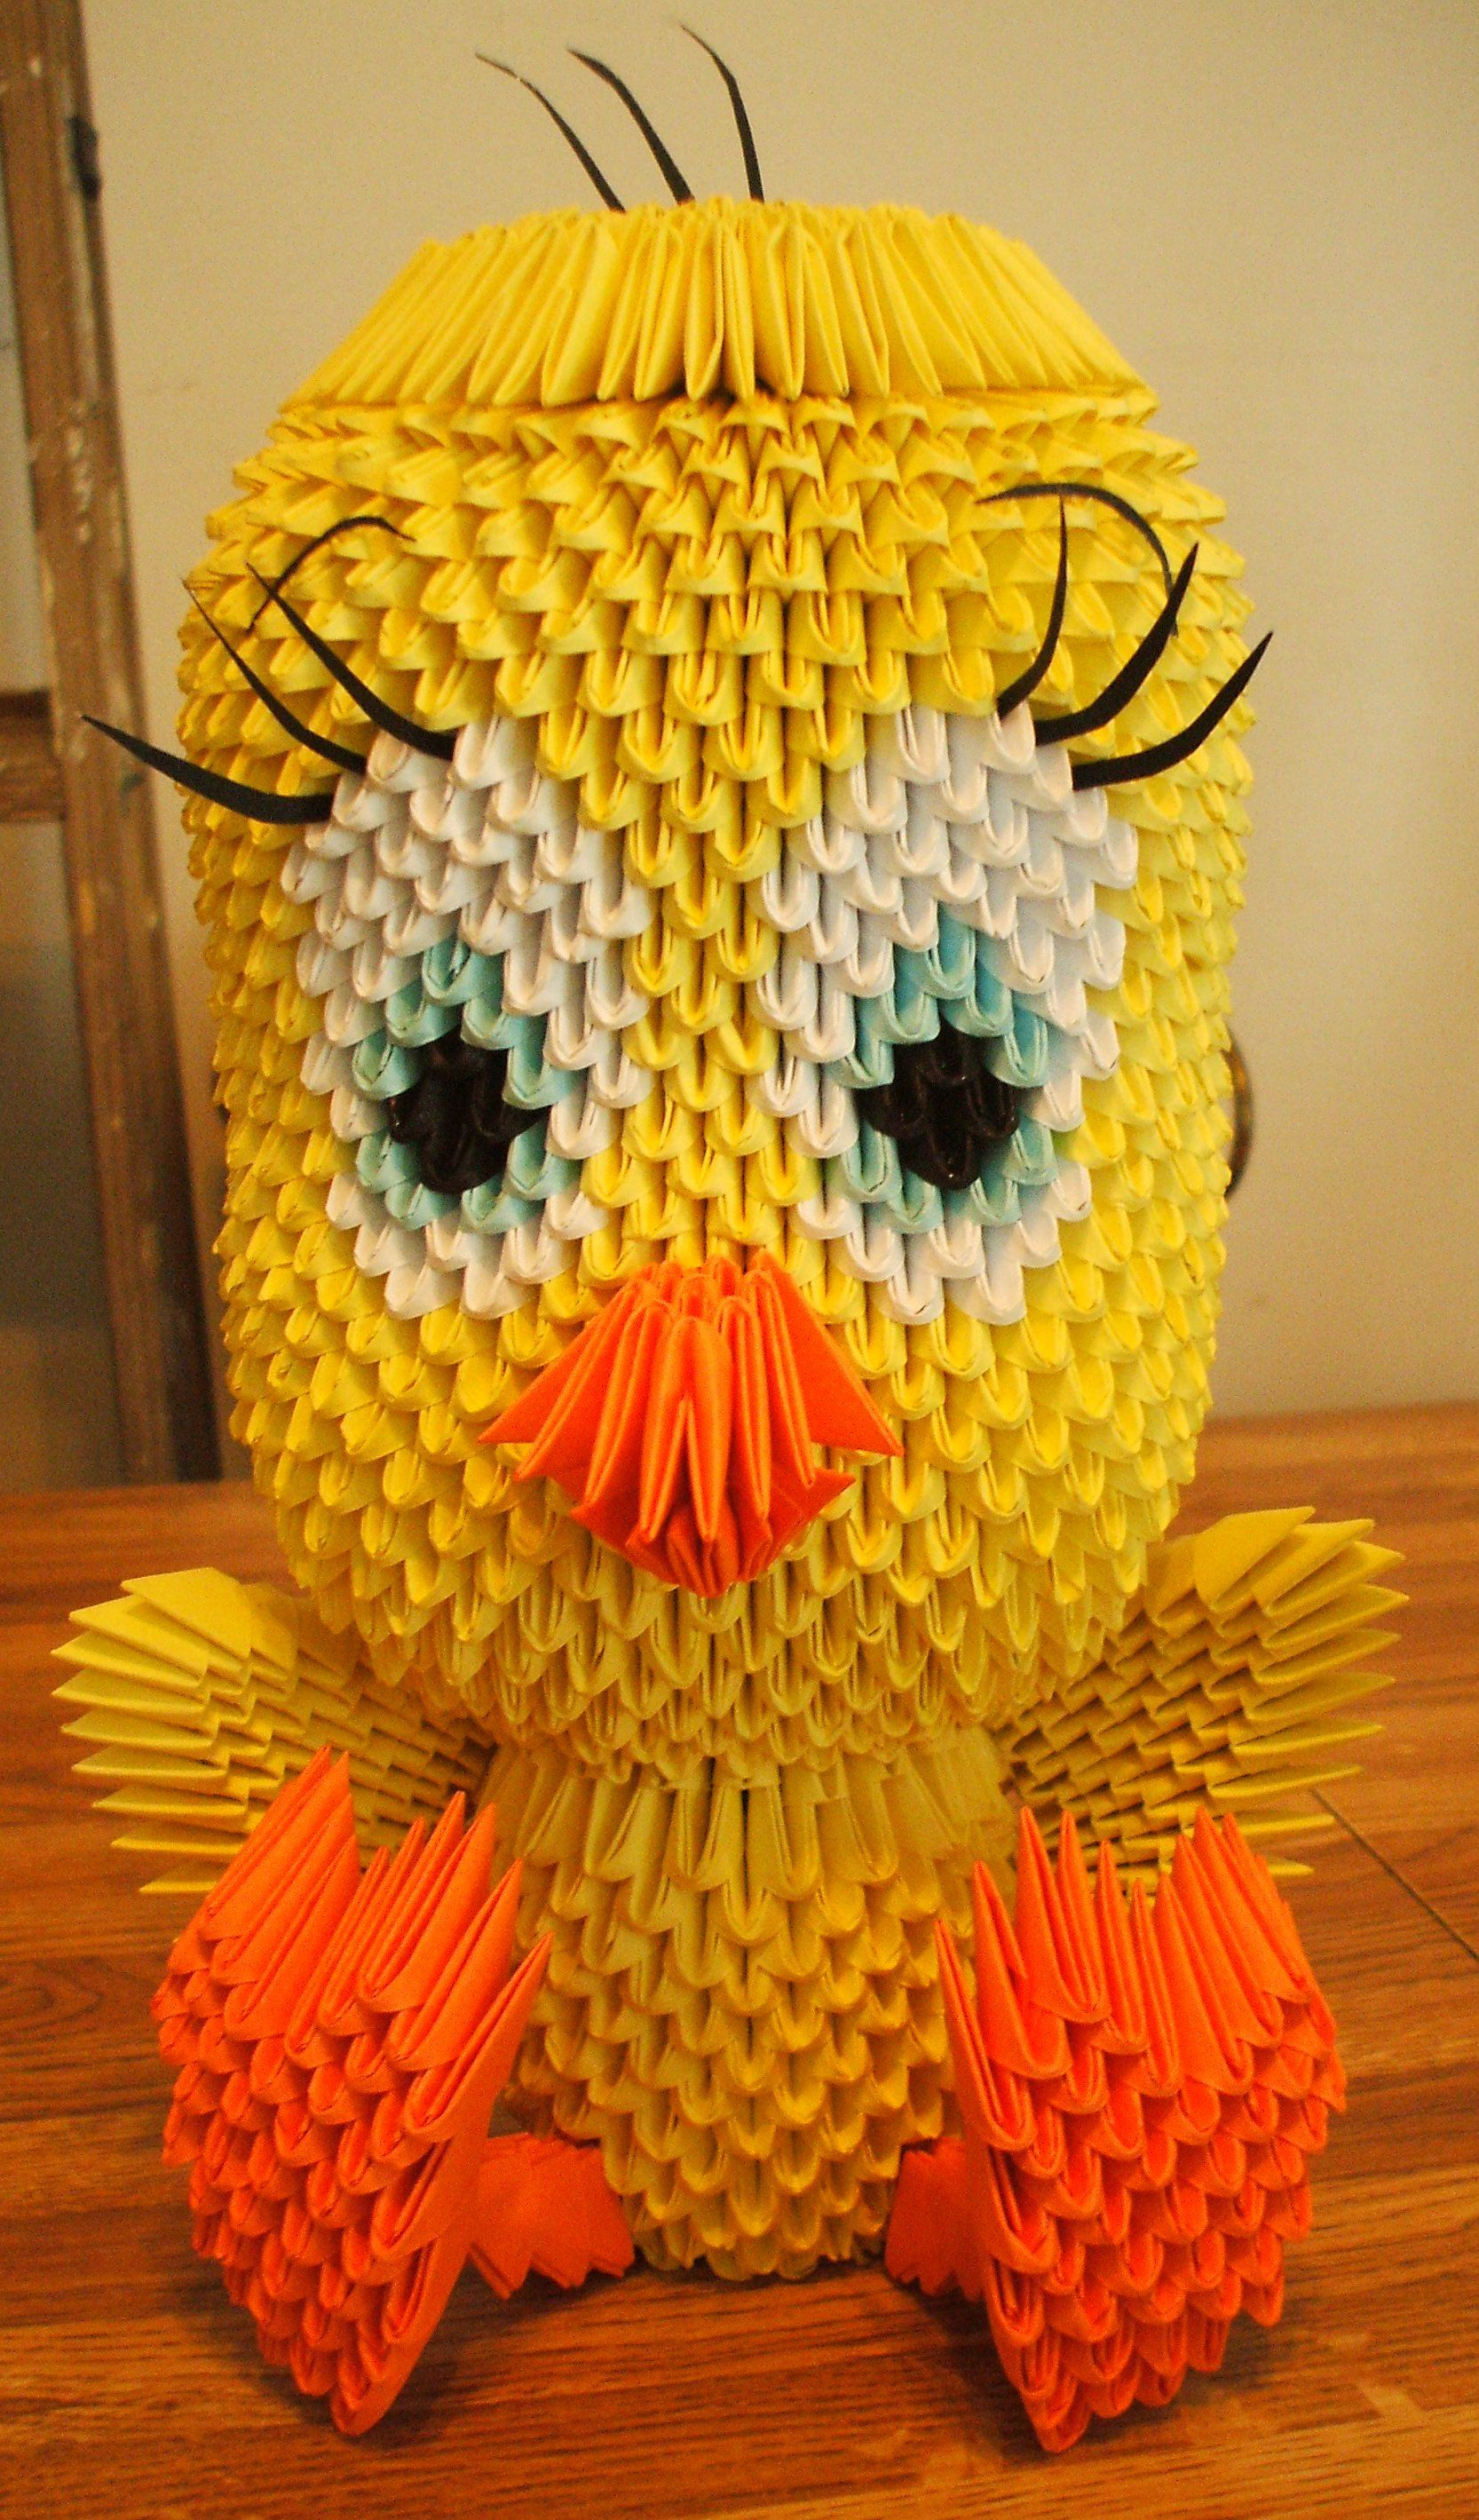 3D Origami Tweety that my daughter made for my sister for ... - photo#26